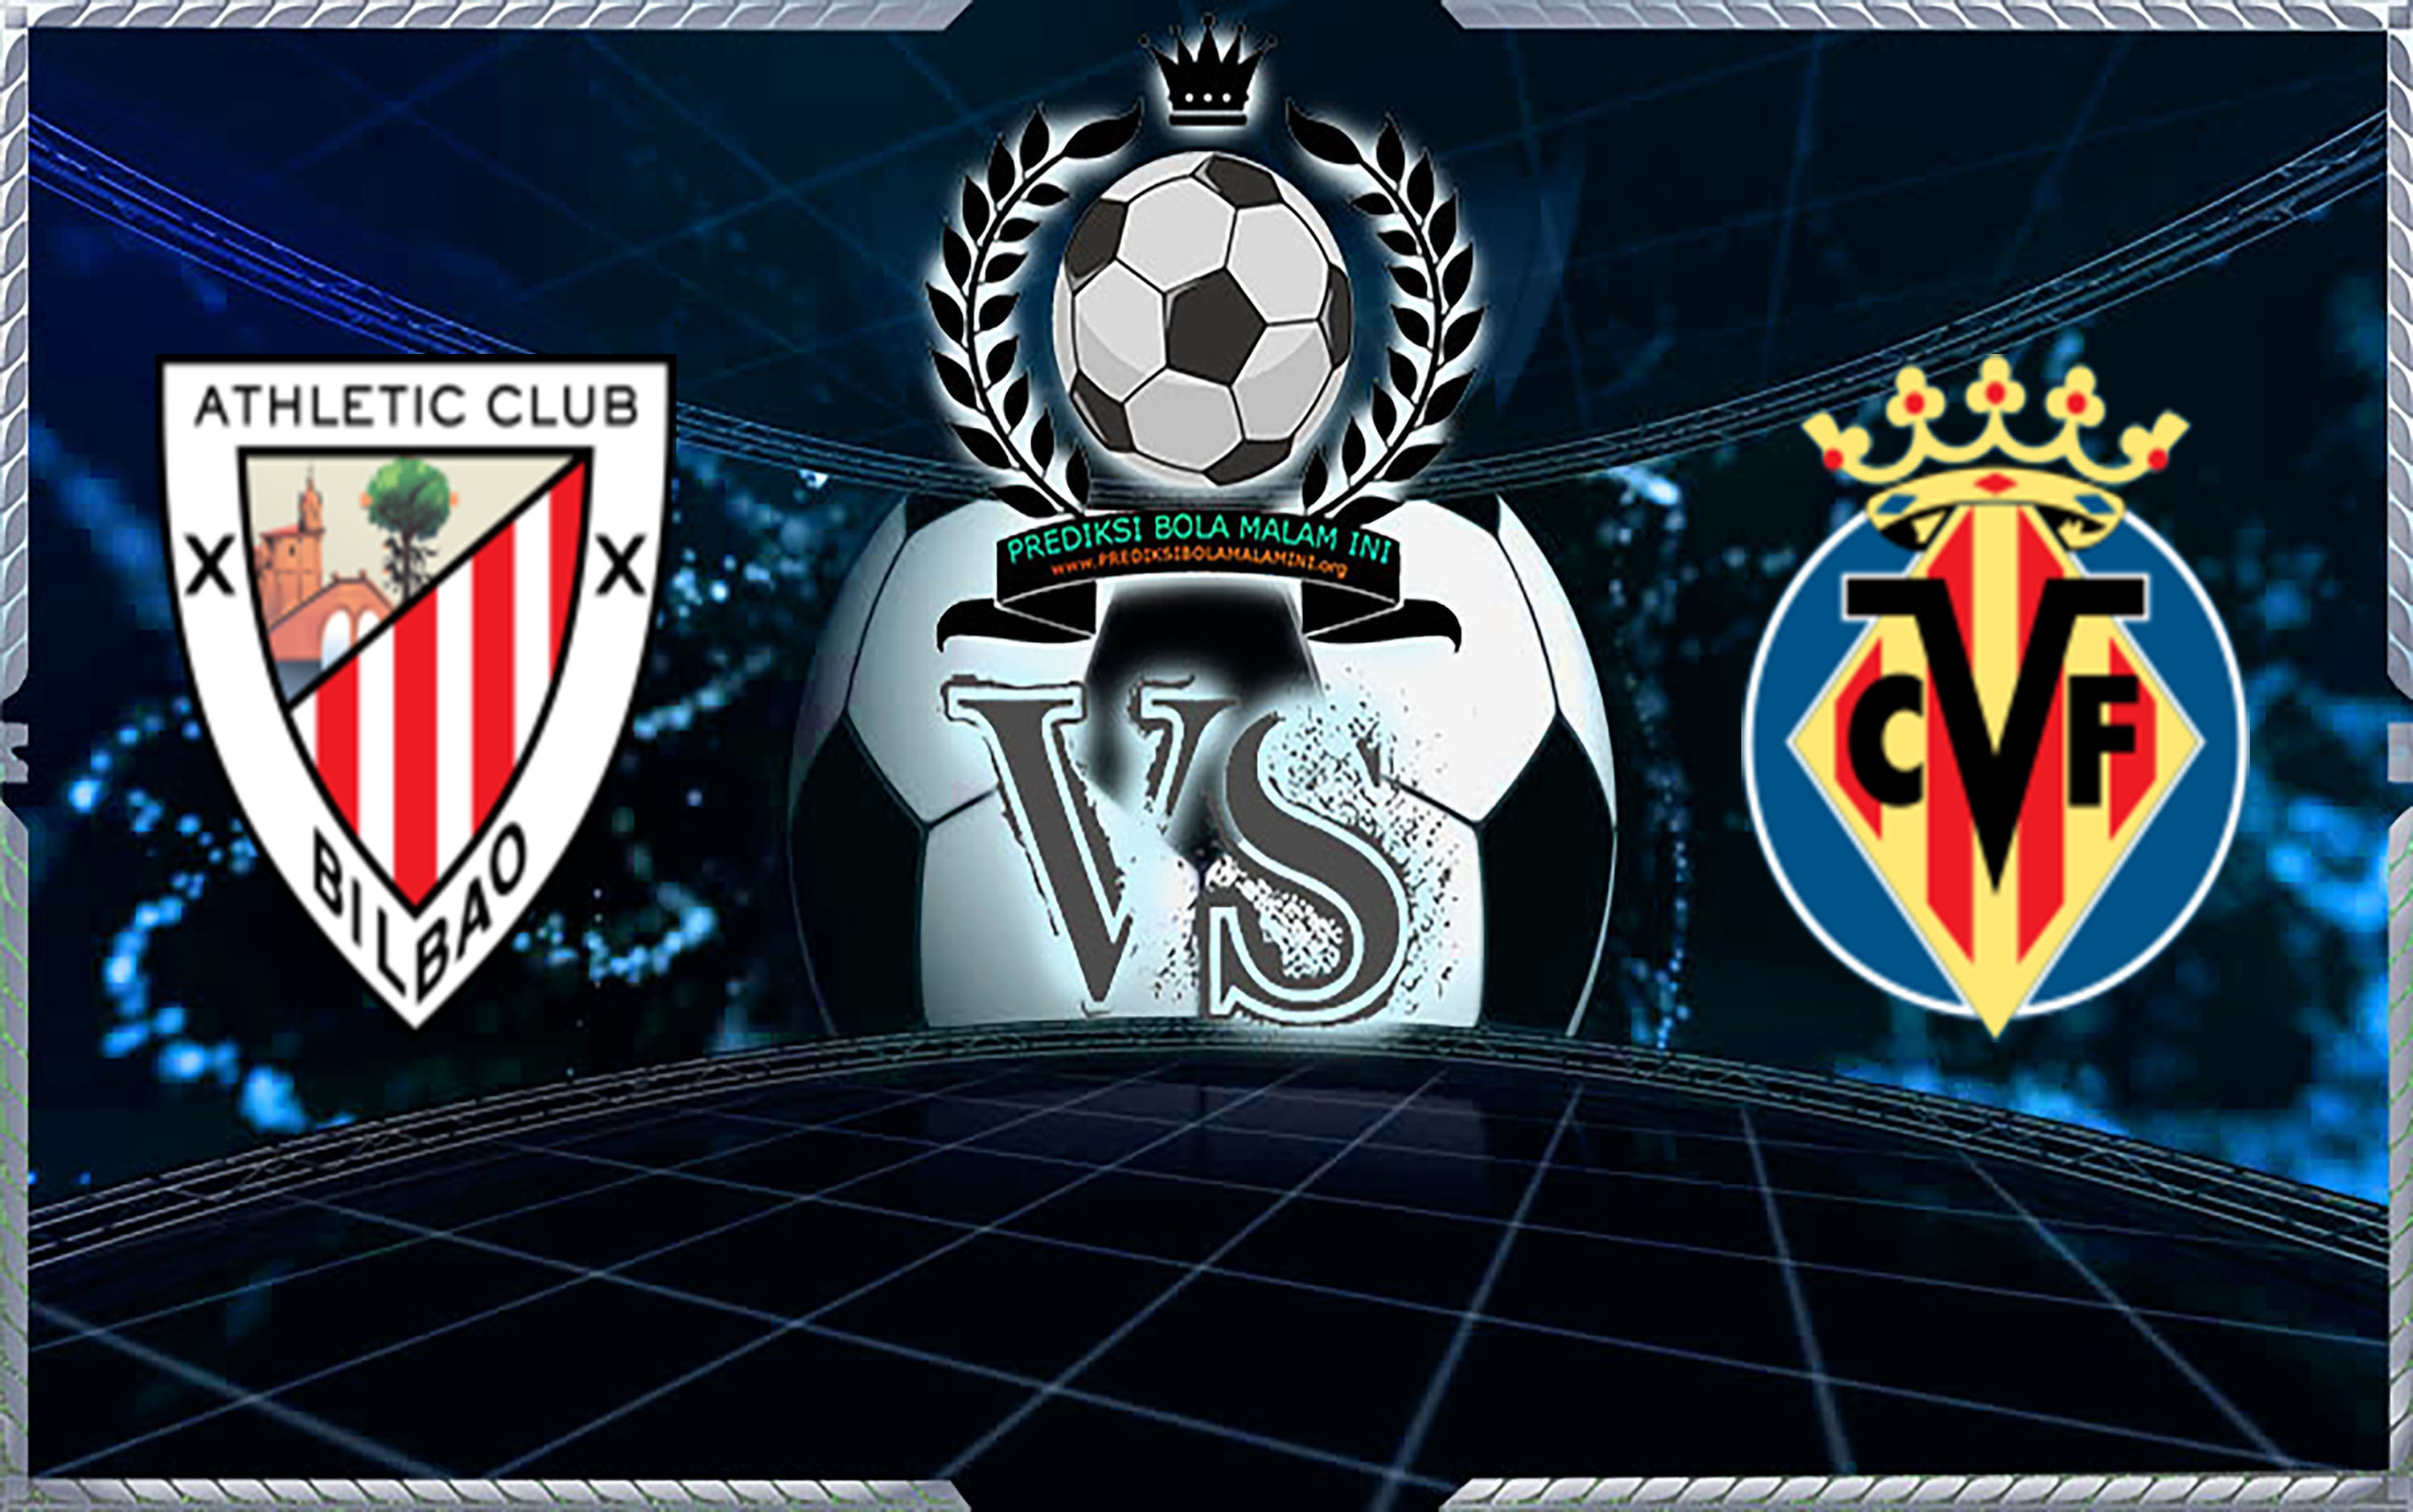 Prediksi Skor Athletic Club Vs Villarreal 27 September 2018